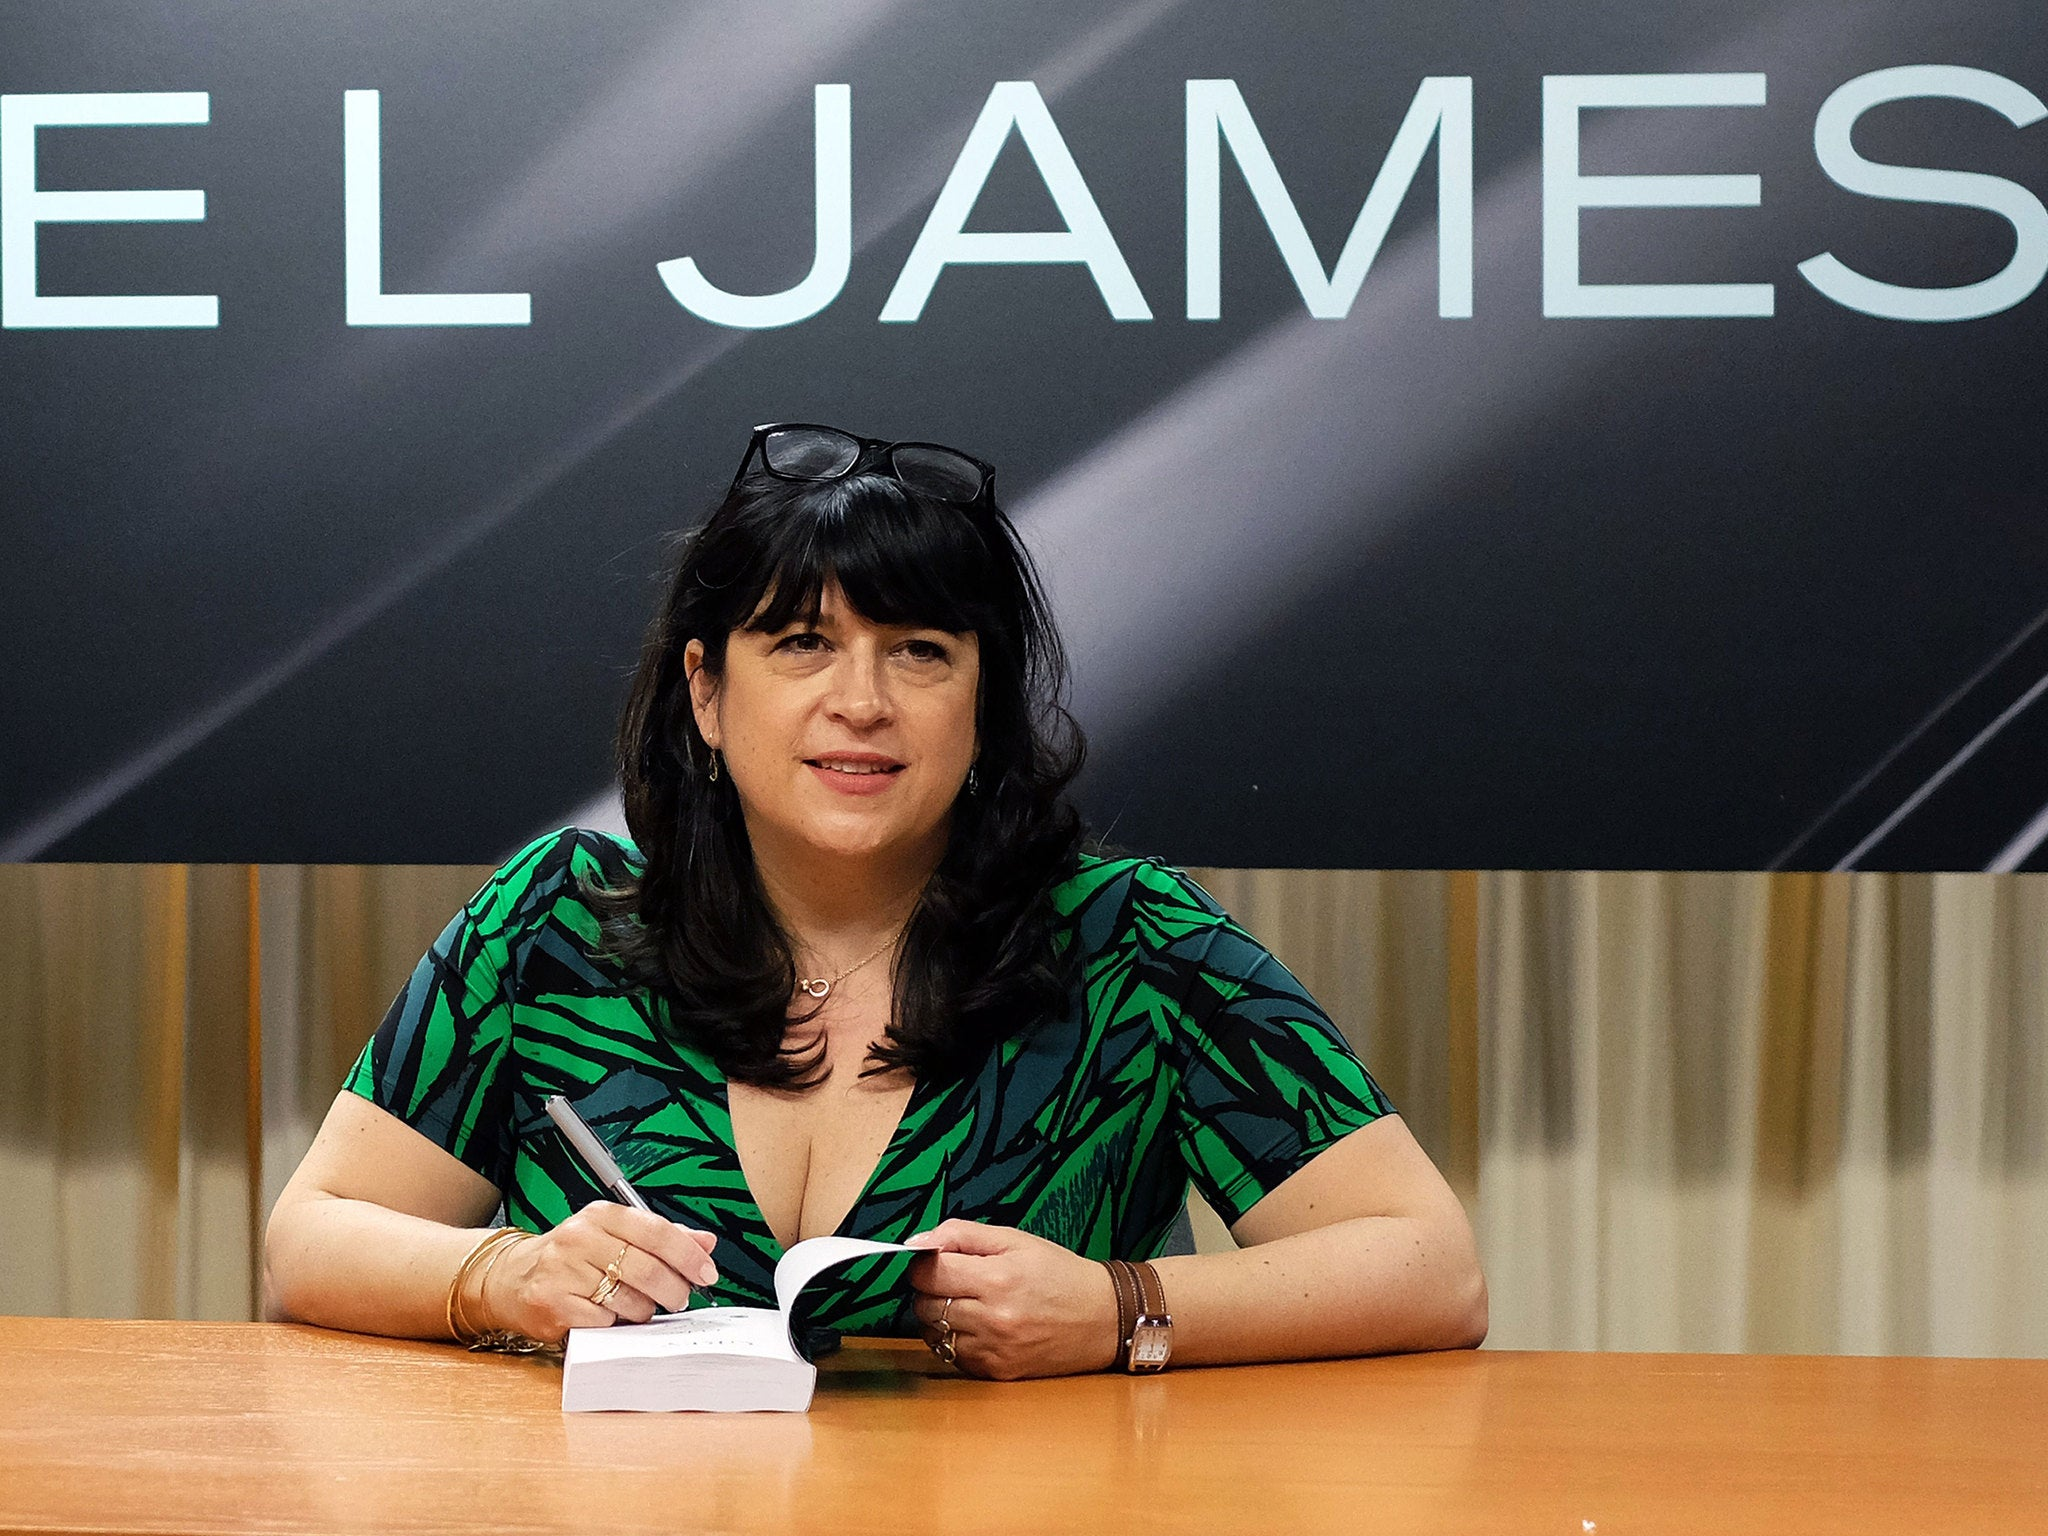 Fifty Shades of Grey author E.L. James pens tamer book The Mister